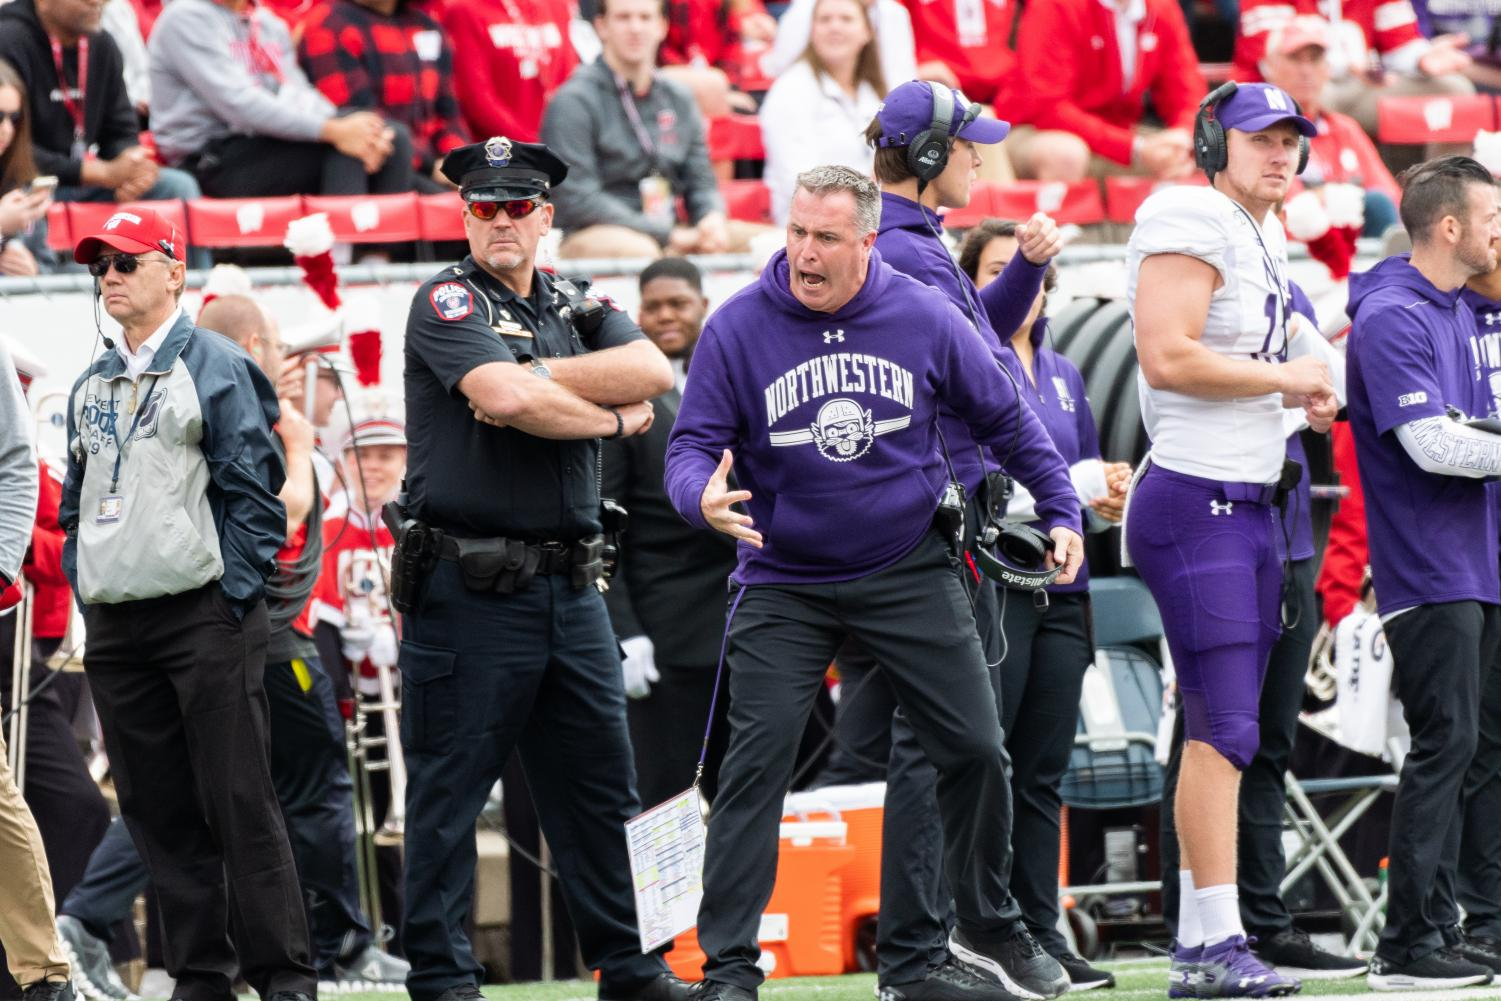 Pat Fitzgerald encourages his team. The Wildcats will play at Nebraska on Saturday in what amounts to a must-win game.